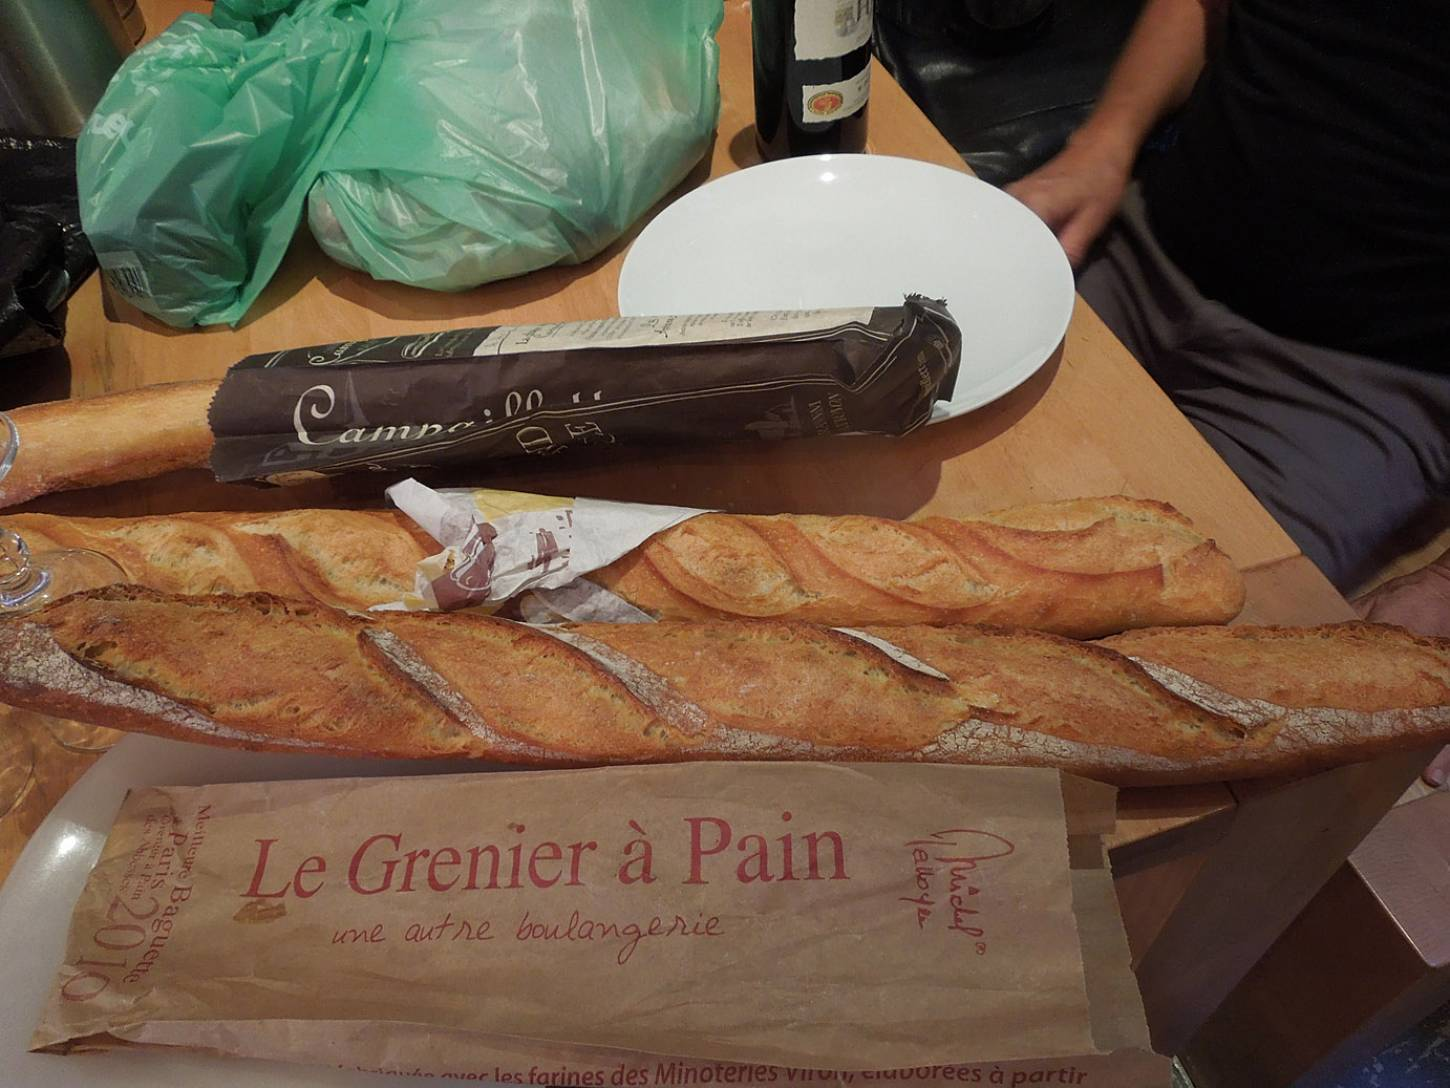 bakers and baguettes of Paris - best baguette winner 2010 and 2015 <a href='http://www.metronews.fr/paris/meilleure-baguette-de-paris-djibril-bodian-aux-abbesses-a-nouveau-prime/mocz!ppmMO8Vo9OGU/' target=_blank>Djibril Bodian of Le Grenier à Pain Abbesses</a> - 7:19pm&nbsp;1<sup>st</sup>&nbsp;Jun.&nbsp;'15